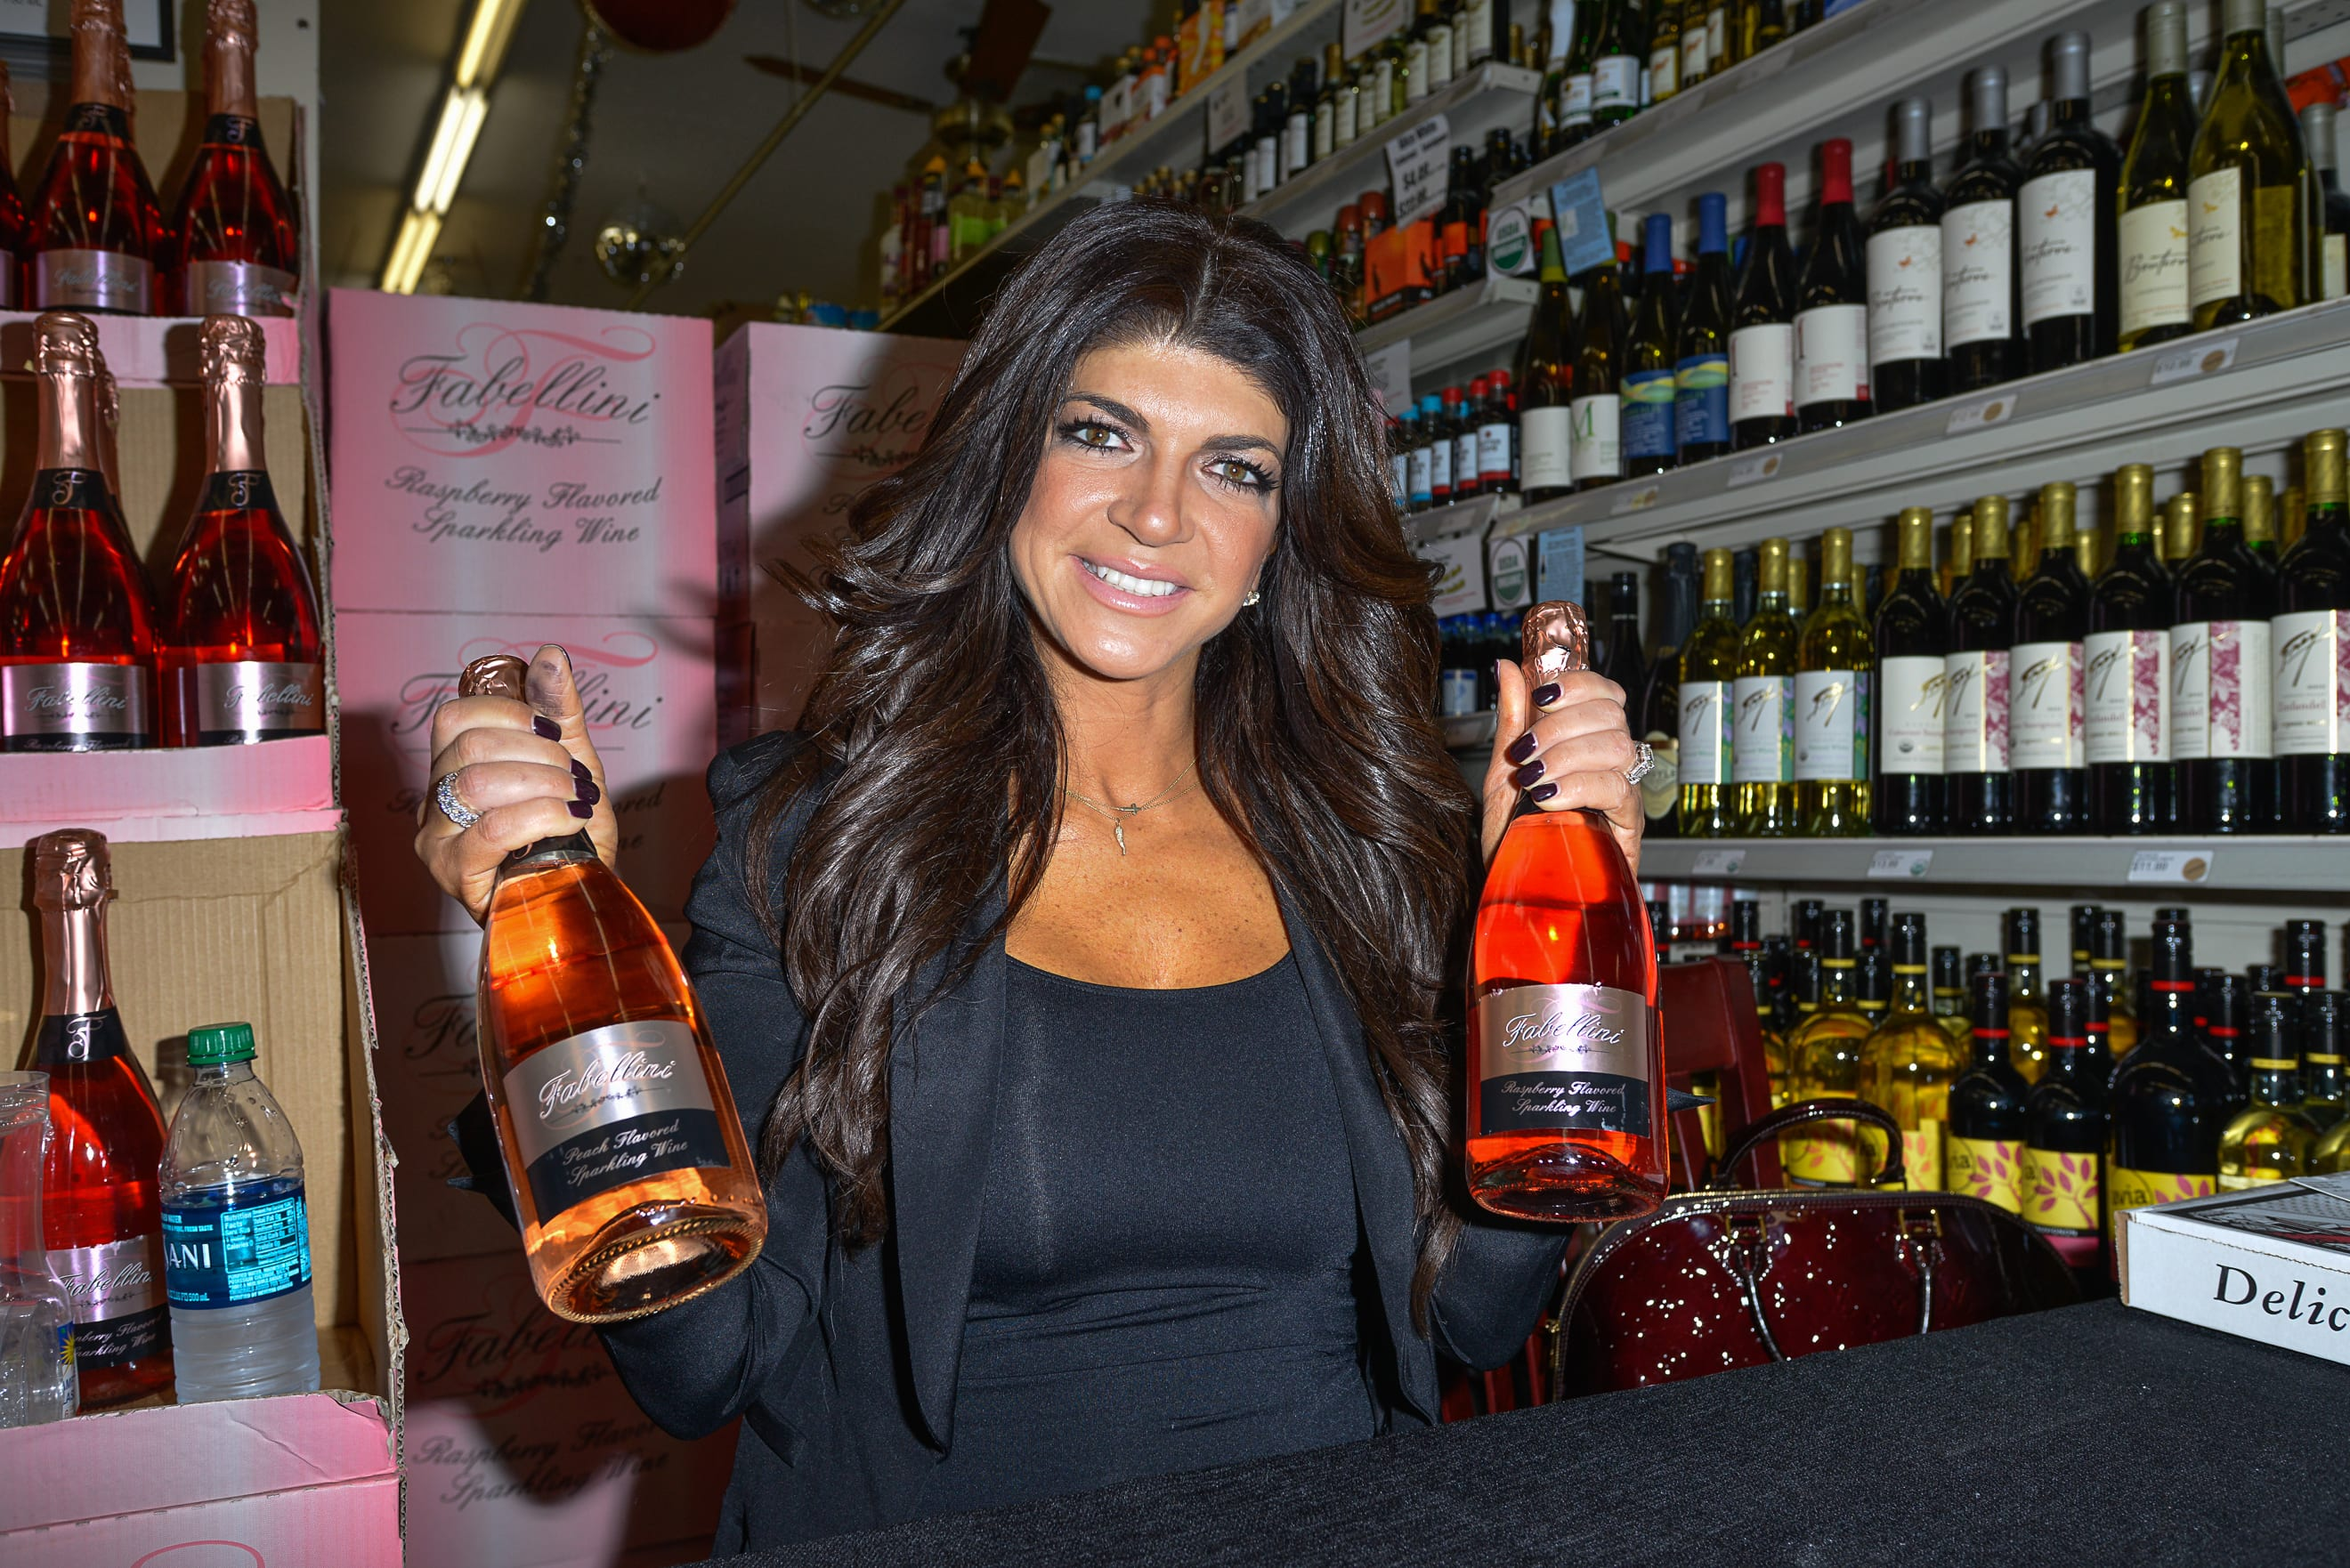 Teresa Giudice Hoping For Early Release Job In Prison Kitchen Lawyer Says The Hollywood Gossip